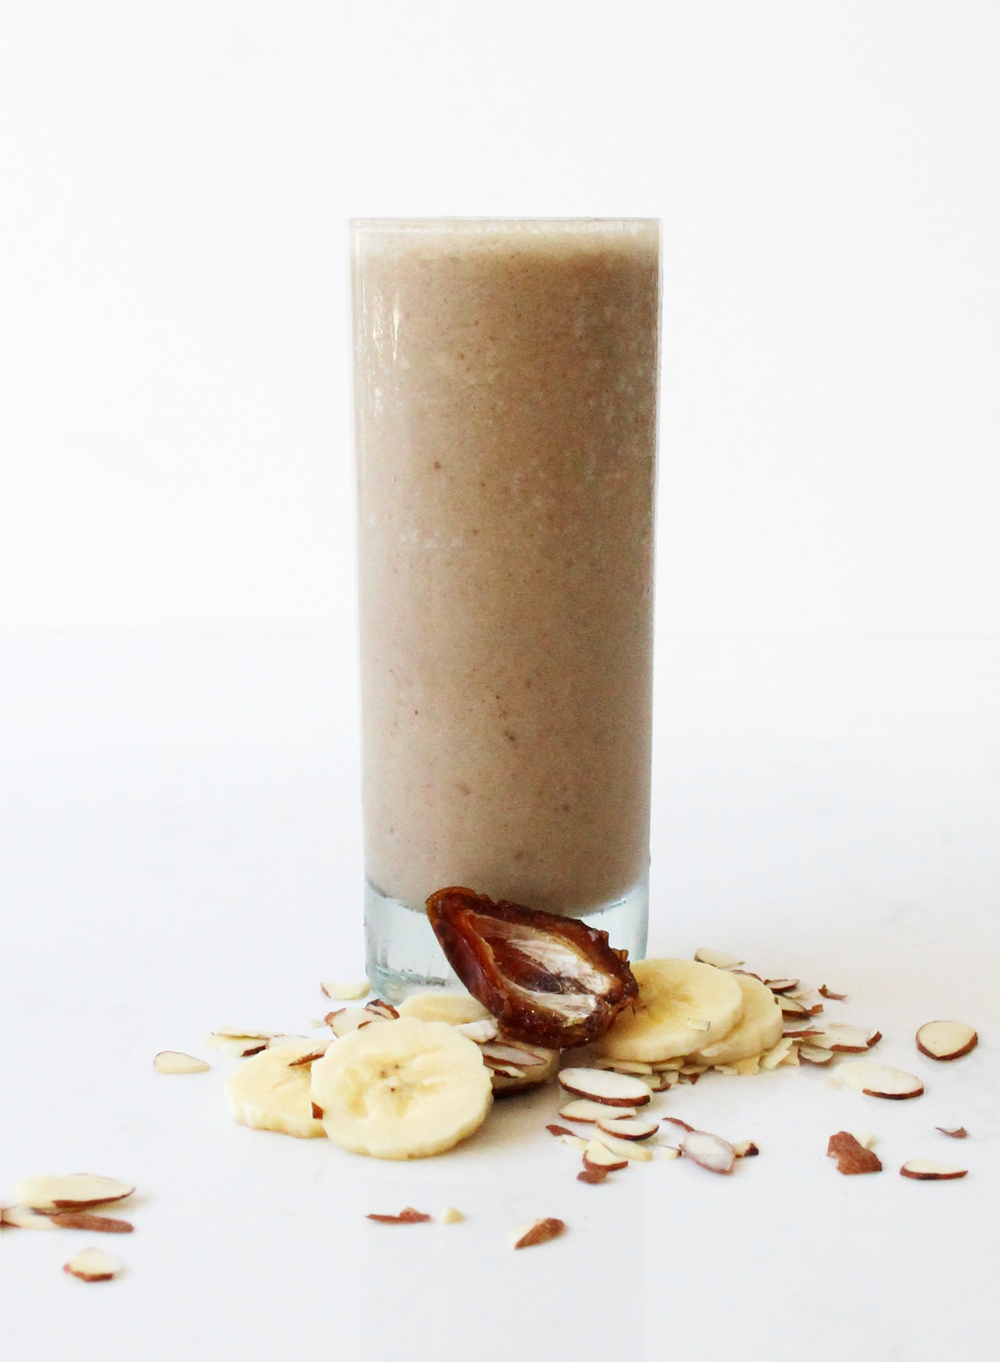 Just Like A Date Just Like a Date is a dreamy concoction of dates, maca, almond butter, bananas, vanilla, and cashew milk. This decadent mix of flavors is nothing short of pure sweet bliss. --- date, banana, maca, almond butter, agave, vanilla extract, cinnamon, vanilla cashew milk